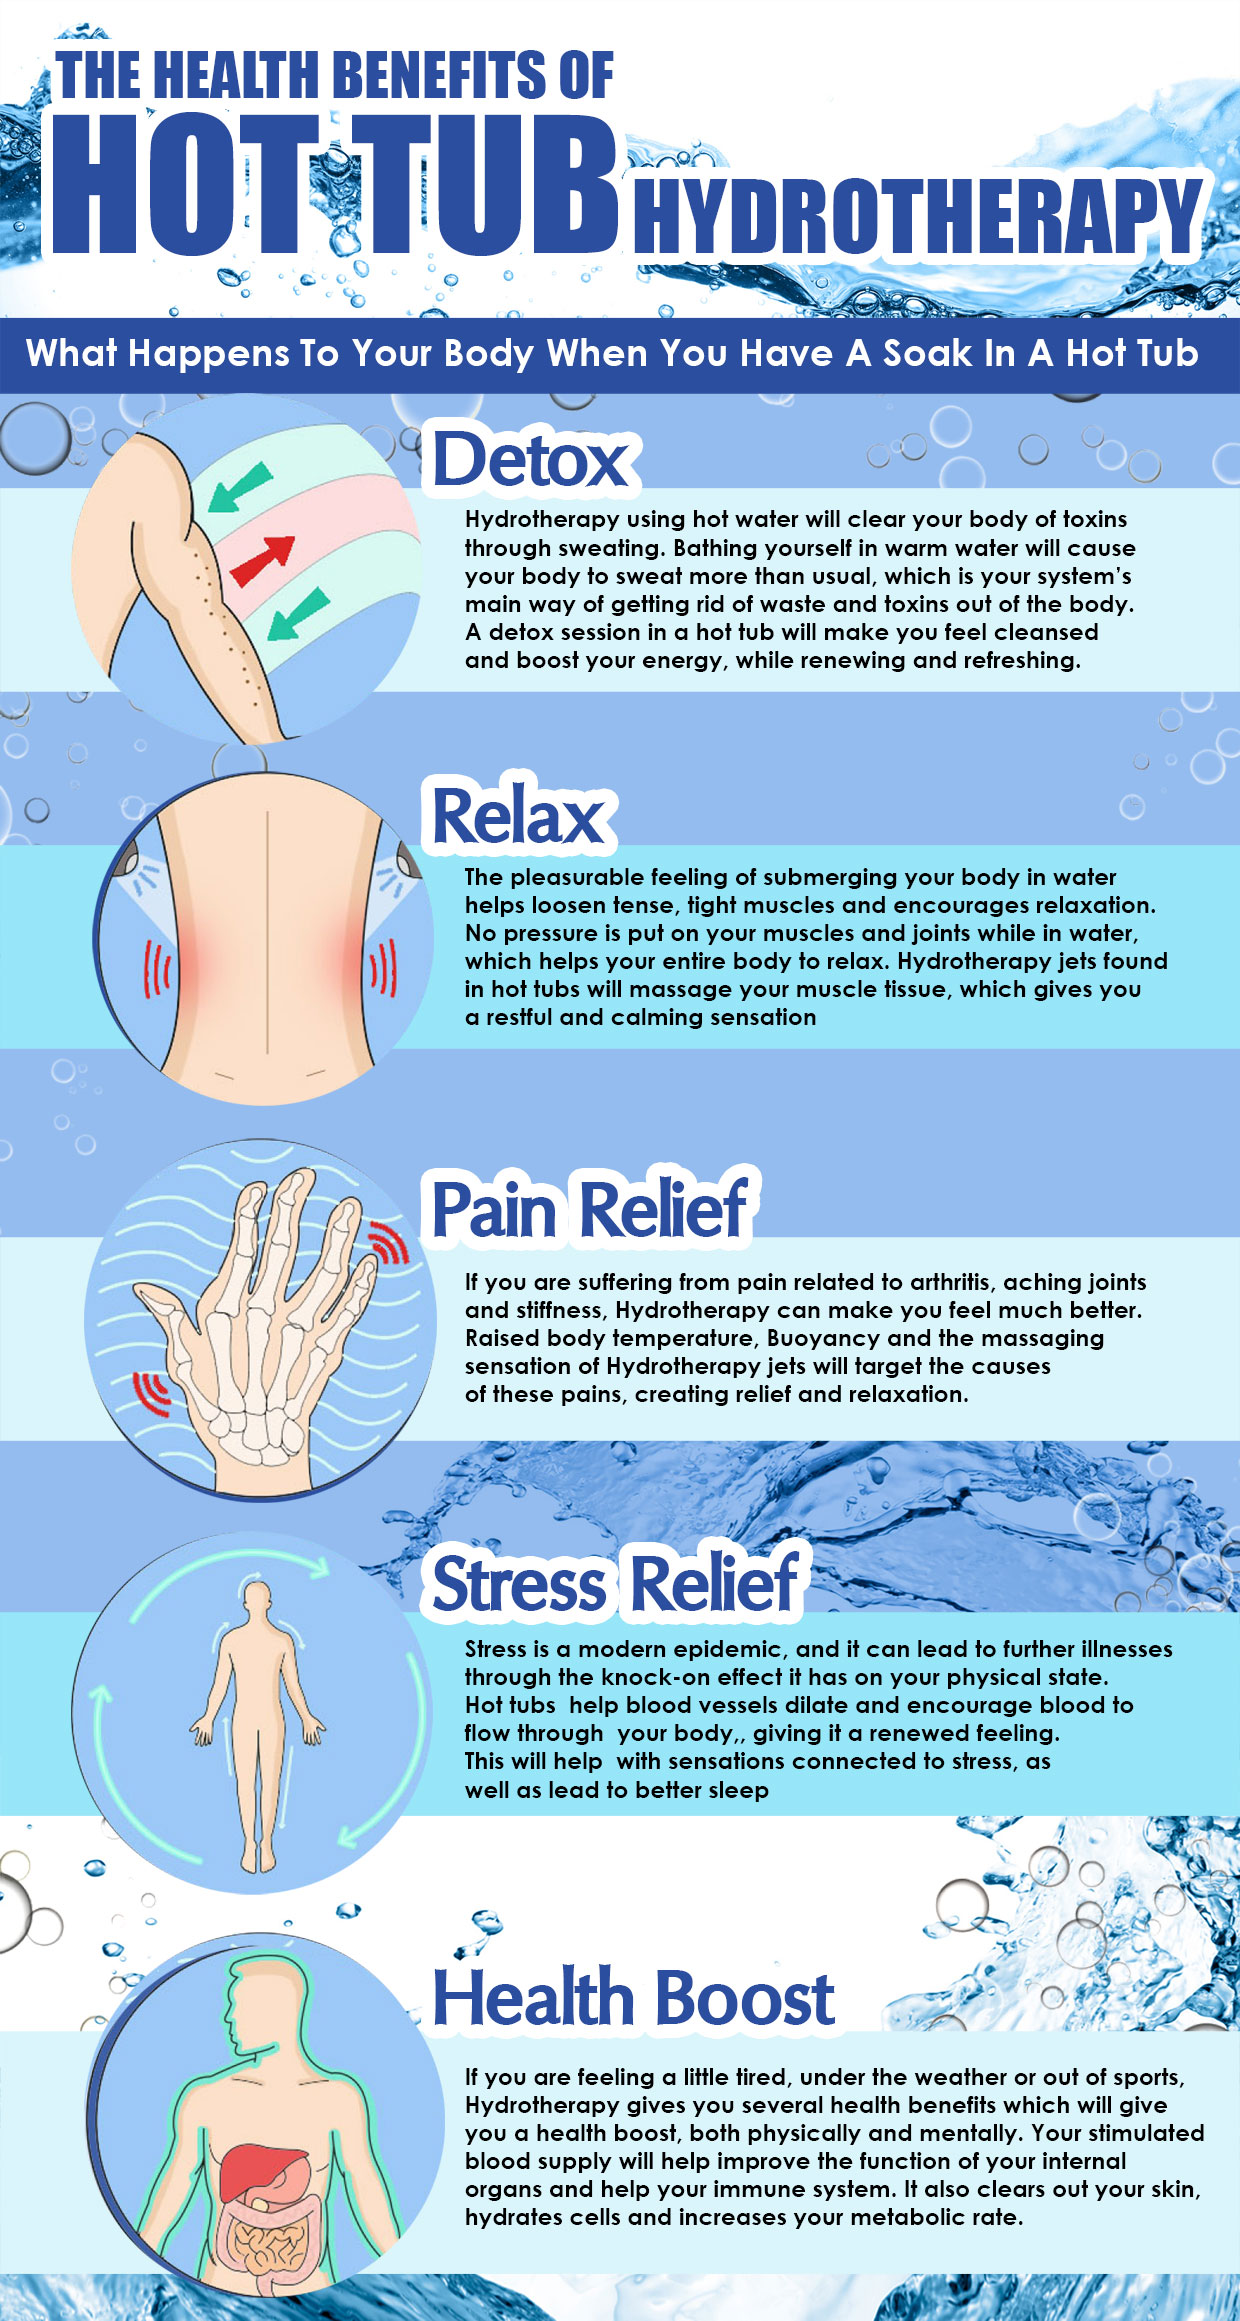 The Health Benefits of Hot Tub Hydrotherapy | Visual.ly